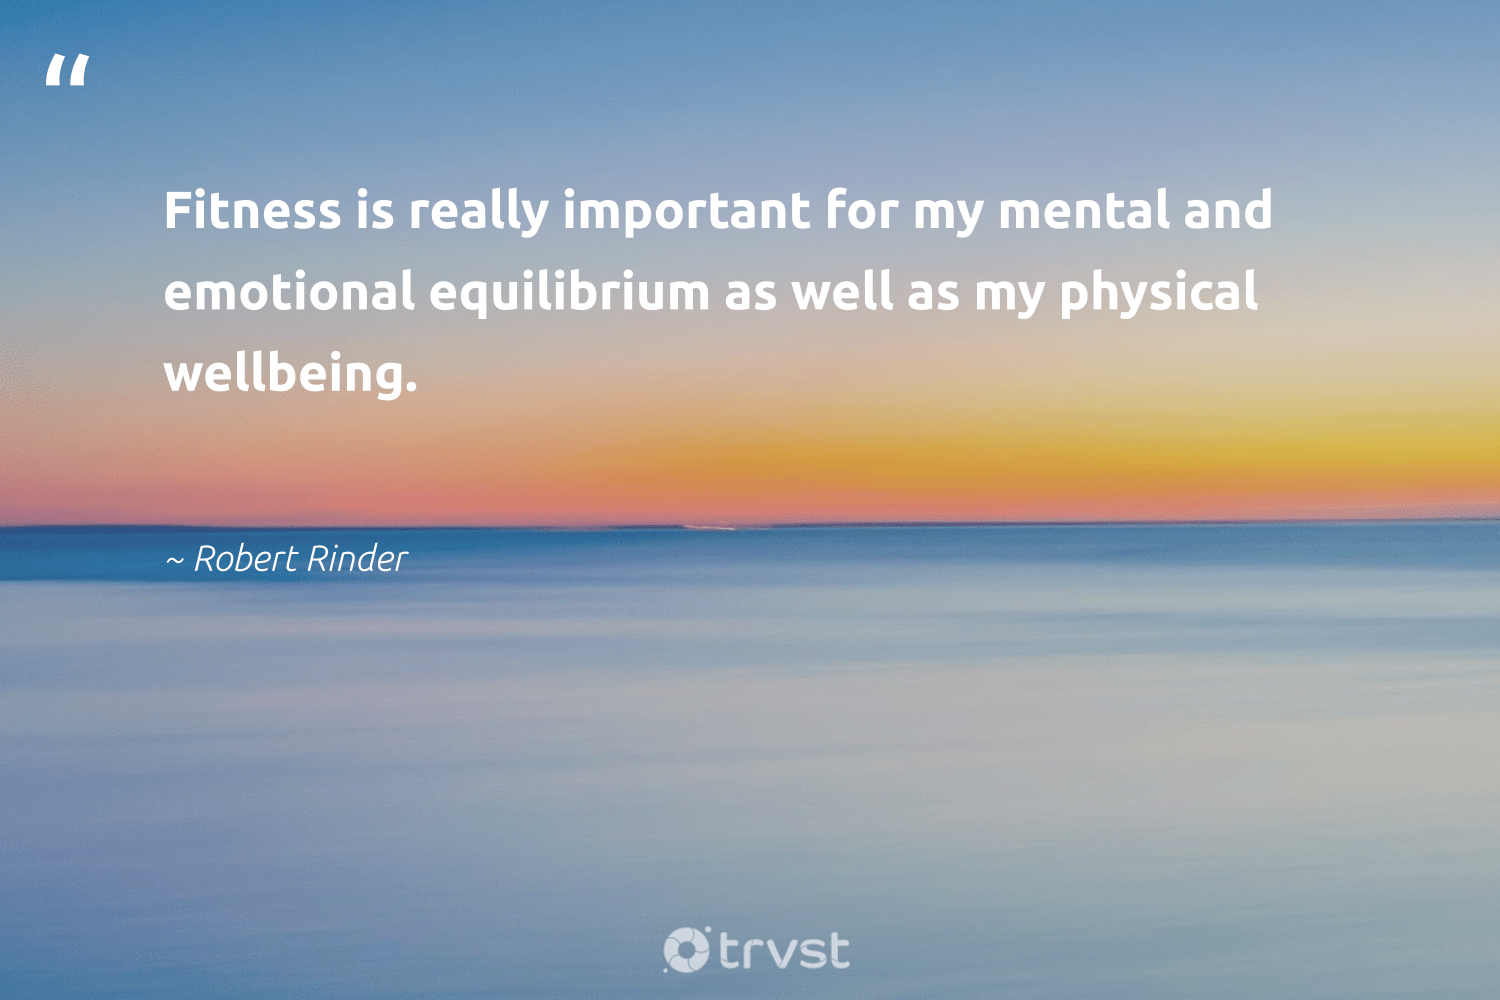 """Fitness is really important for my mental and emotional equilibrium as well as my physical wellbeing.""  - Robert Rinder #trvst #quotes #wellbeing #fitness #healthyliving #health #togetherwecan #dotherightthing #wellness #nevergiveup #mindset #beinspired"